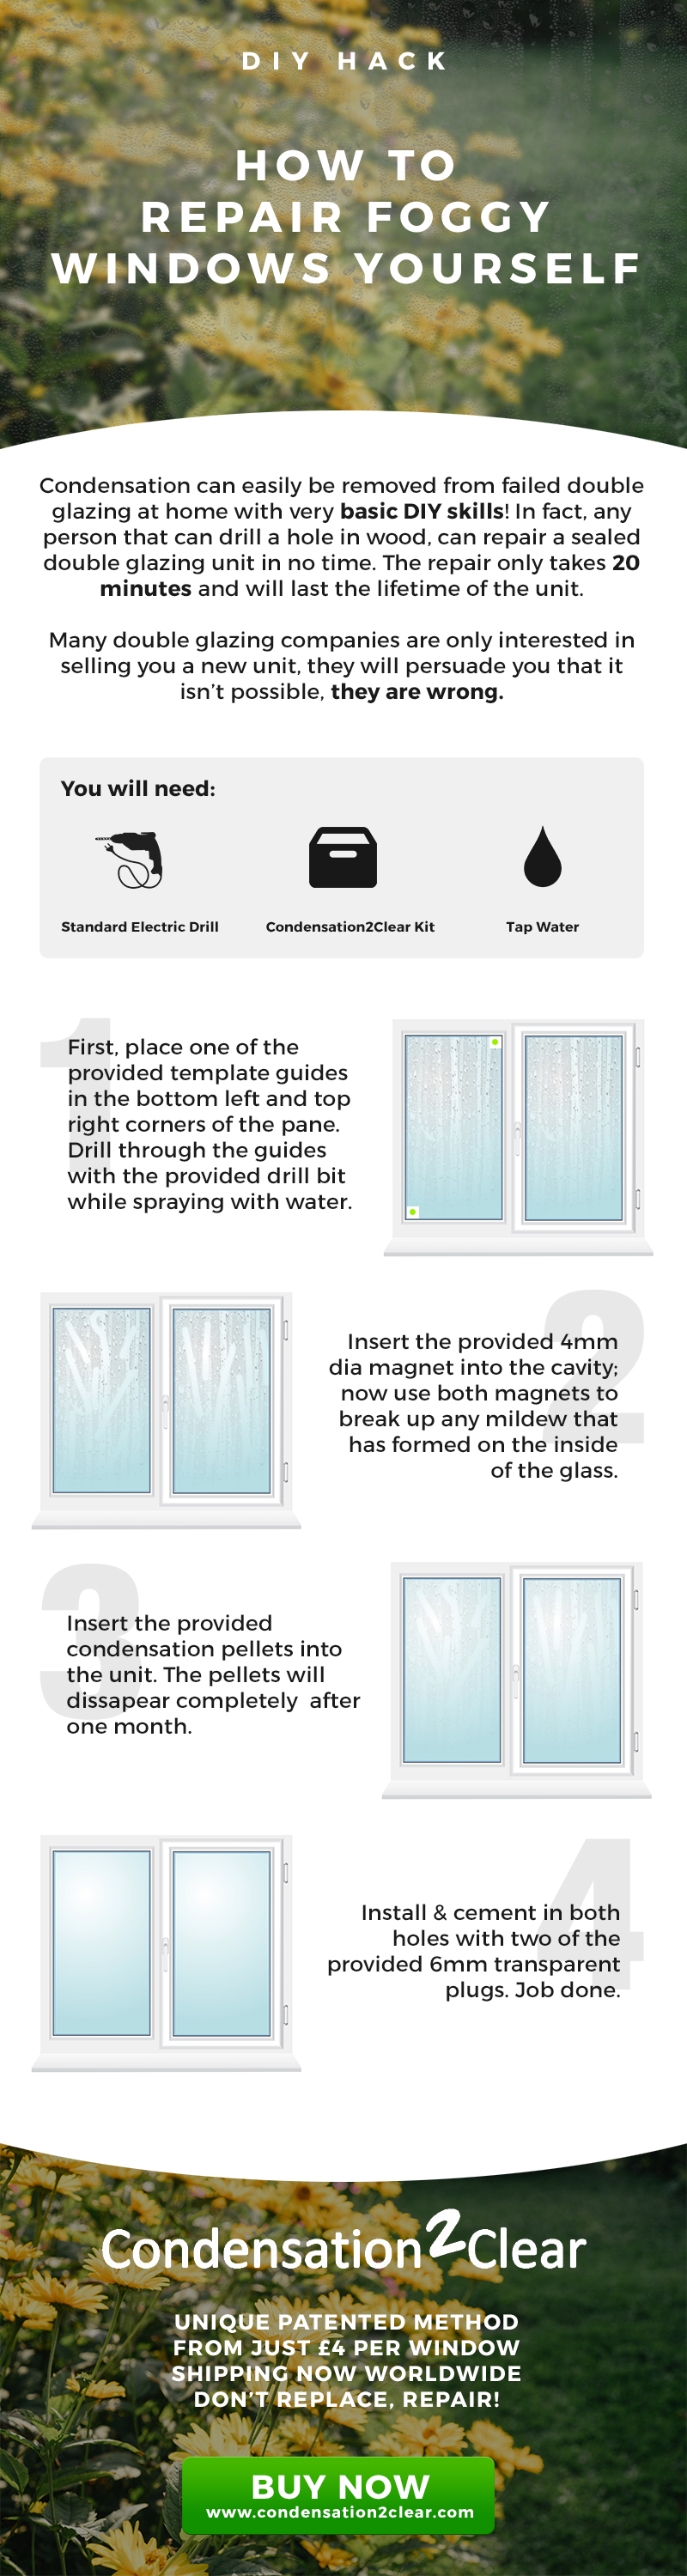 How to repair foggy windows yourself infographic